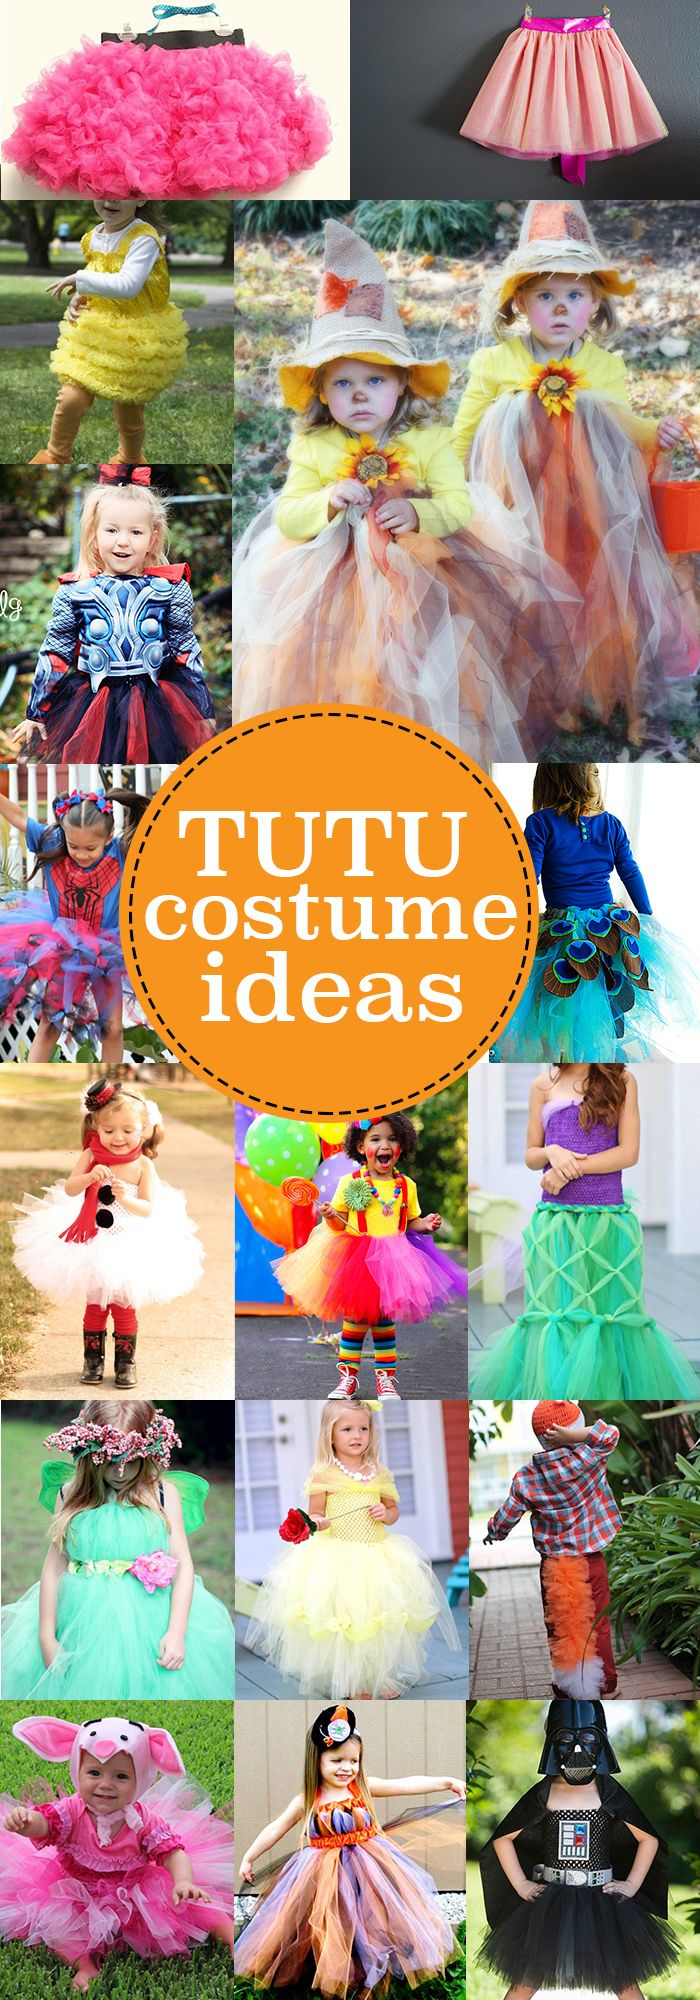 designer winter jackets for men Halloween tutu costume tutorials